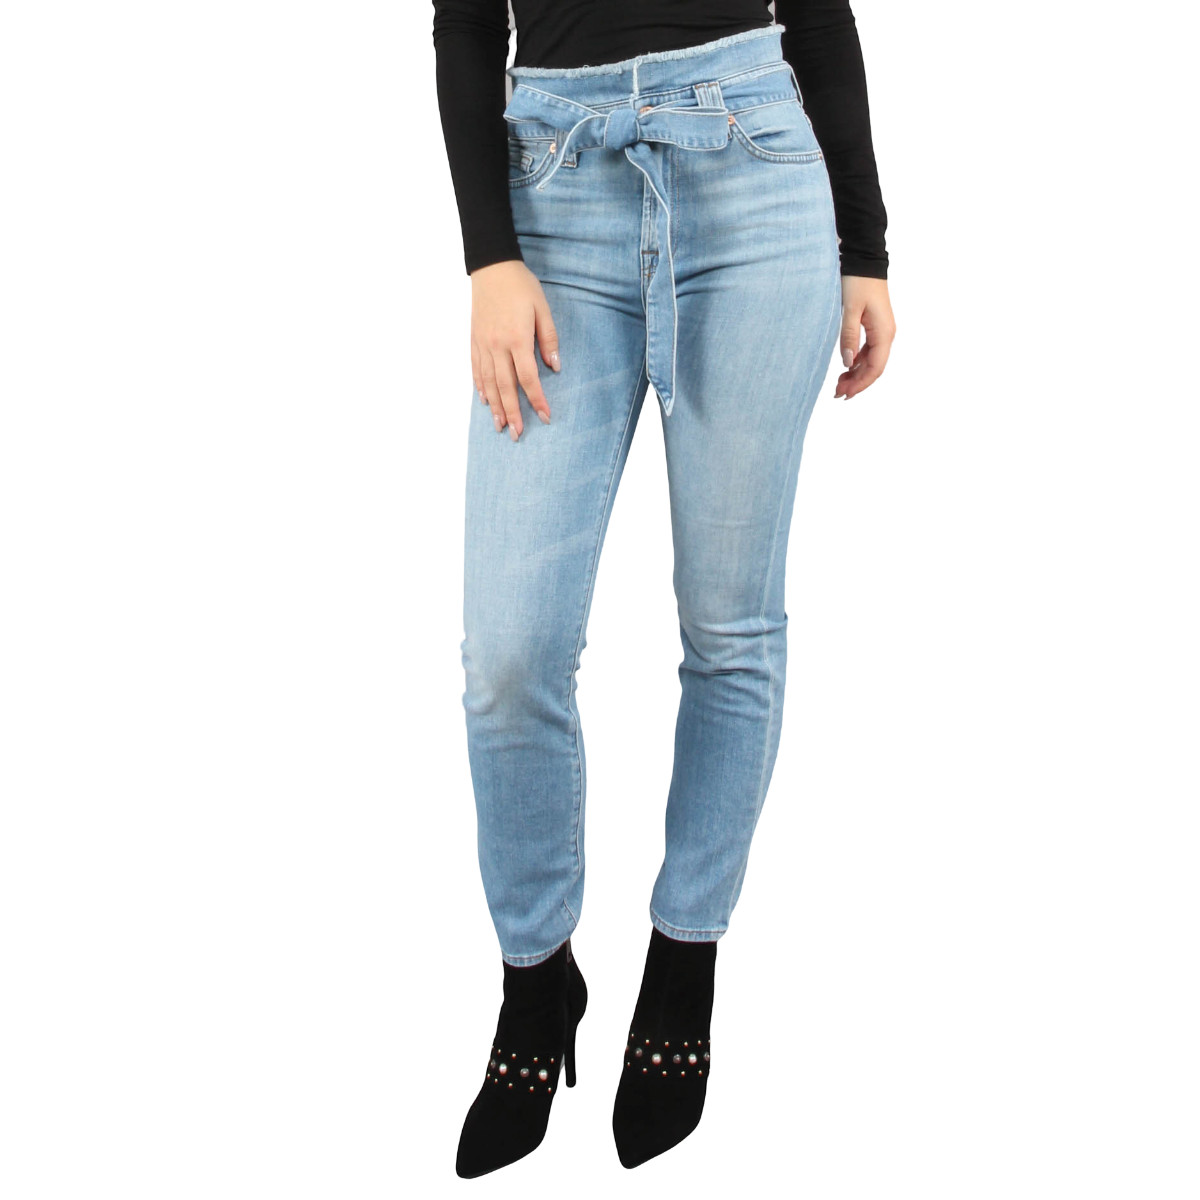 Afbeelding van 7 For All Mankind Paperbag waist pant blauw